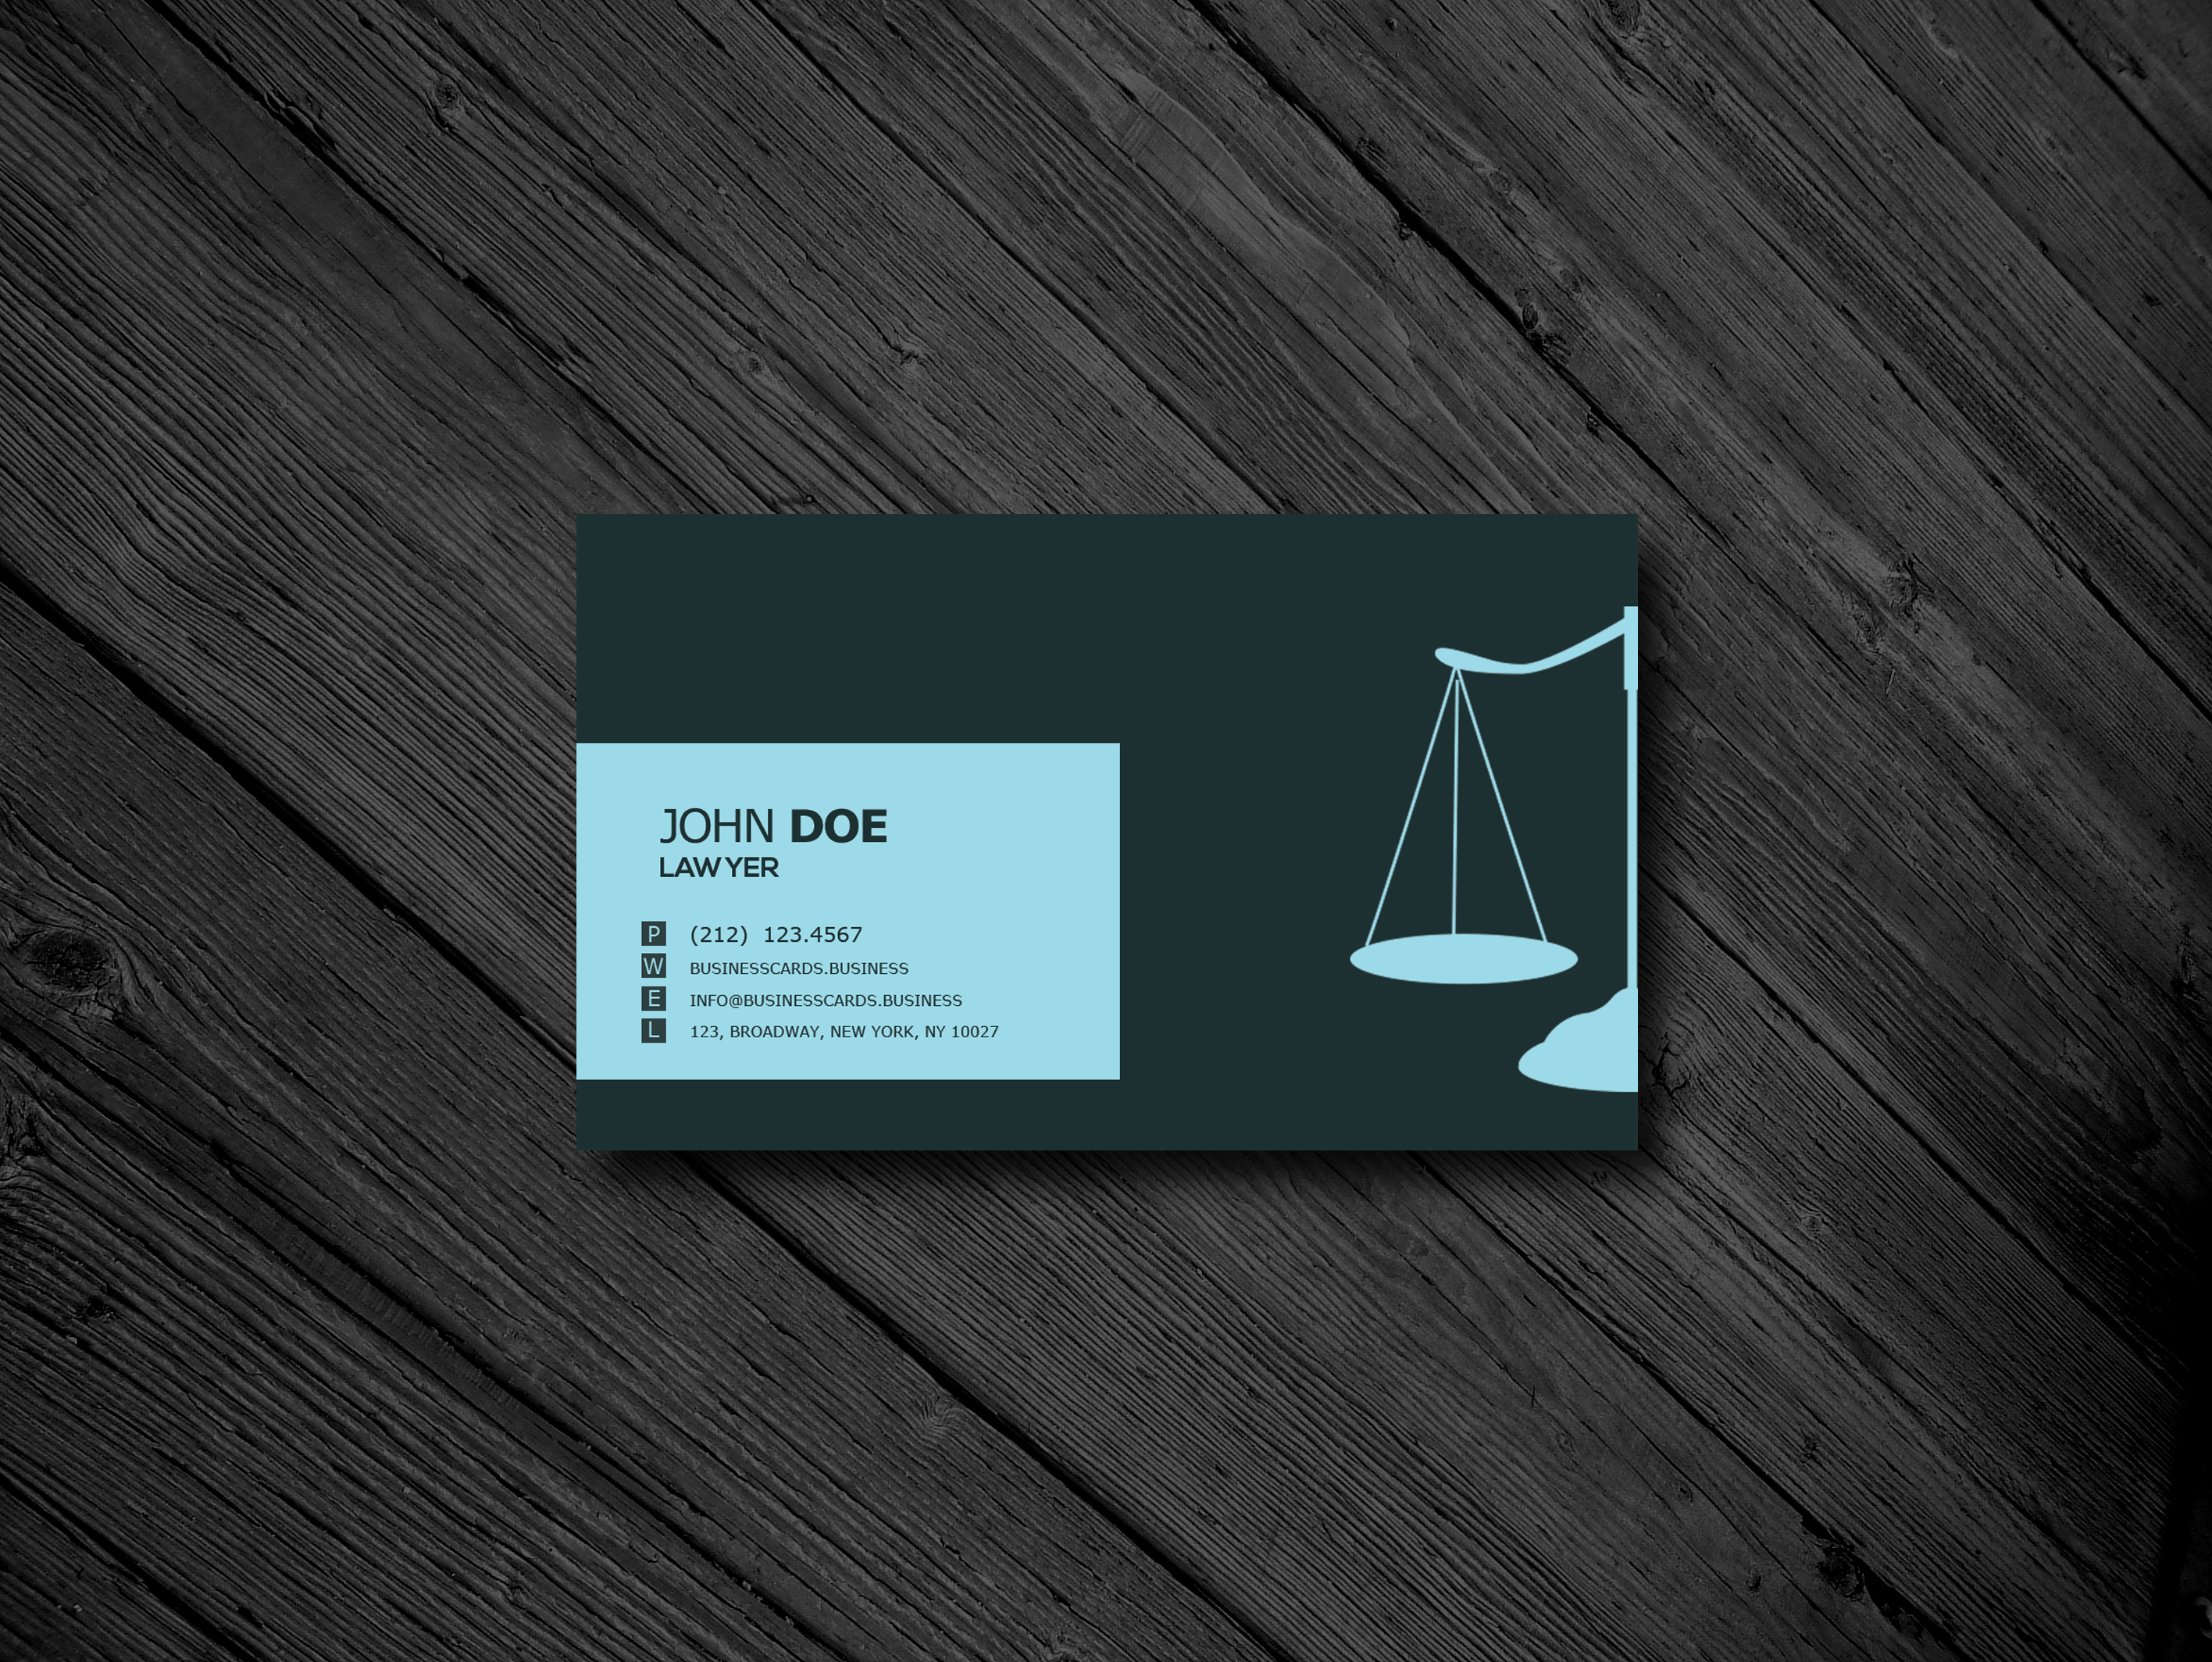 Free business card templates business cards templates free lawyer business card psd template cheaphphosting Gallery